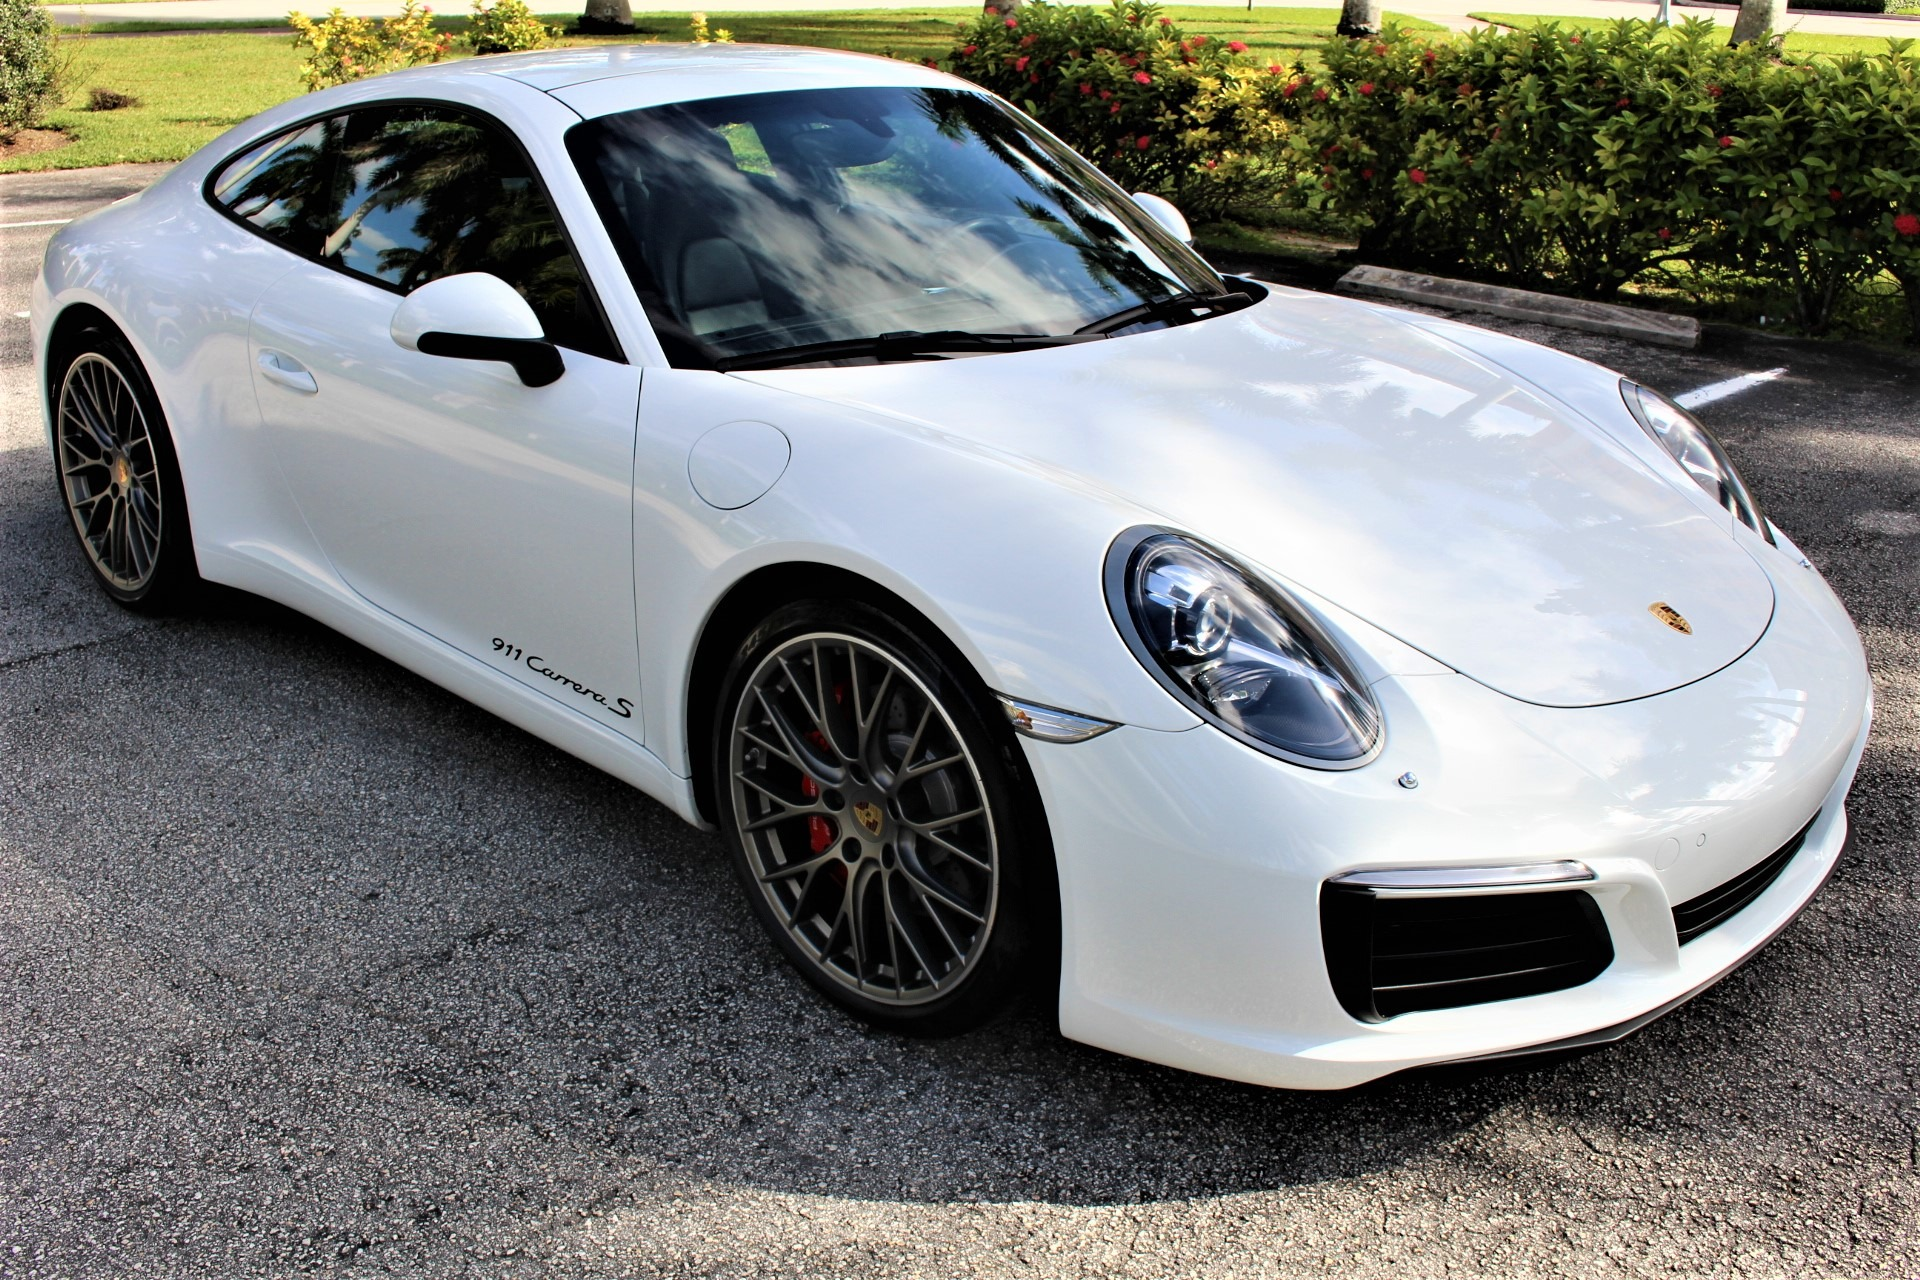 Used 2017 Porsche 911 Carrera S for sale Sold at The Gables Sports Cars in Miami FL 33146 2